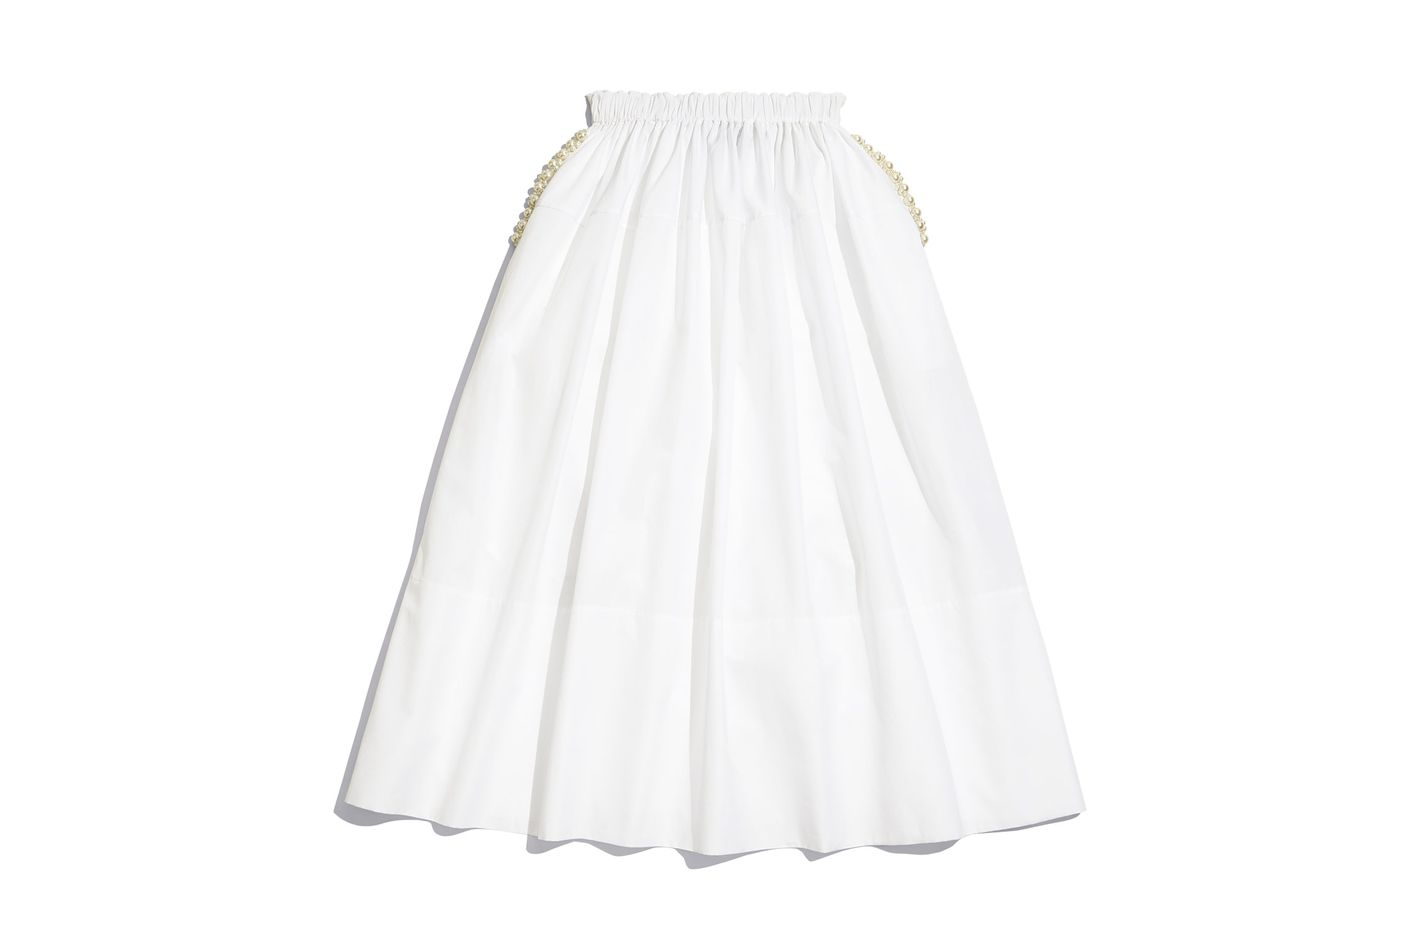 Simone Rocha Cotton Poplin Skirt with Pearl Embellishment